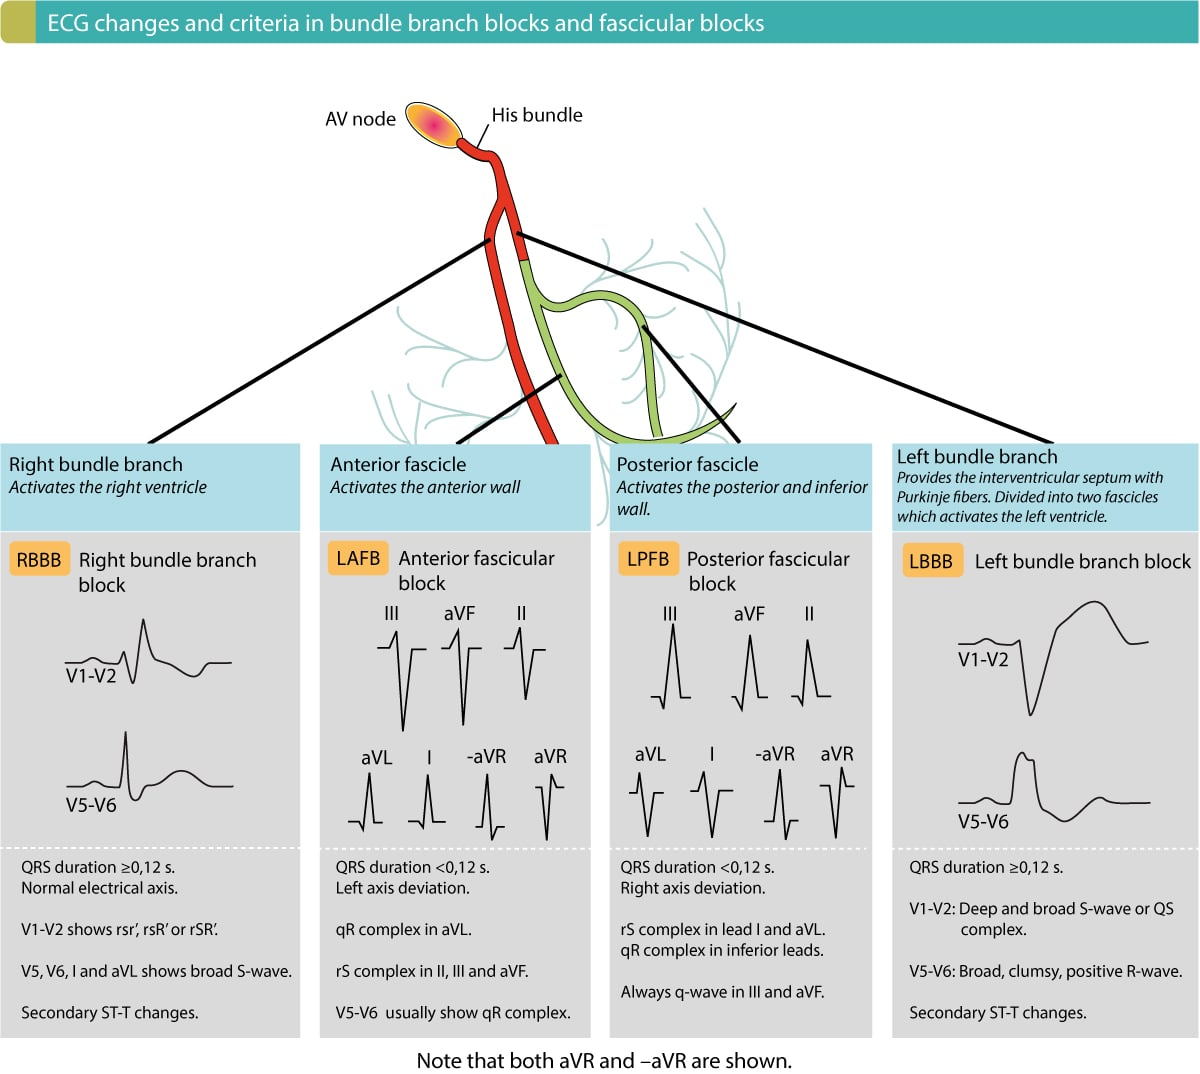 Overview of intraventricular conduction delay defect ecg learning overview of criteria and ecg changes in bundle branch blocks and fascicular blocks ccuart Images